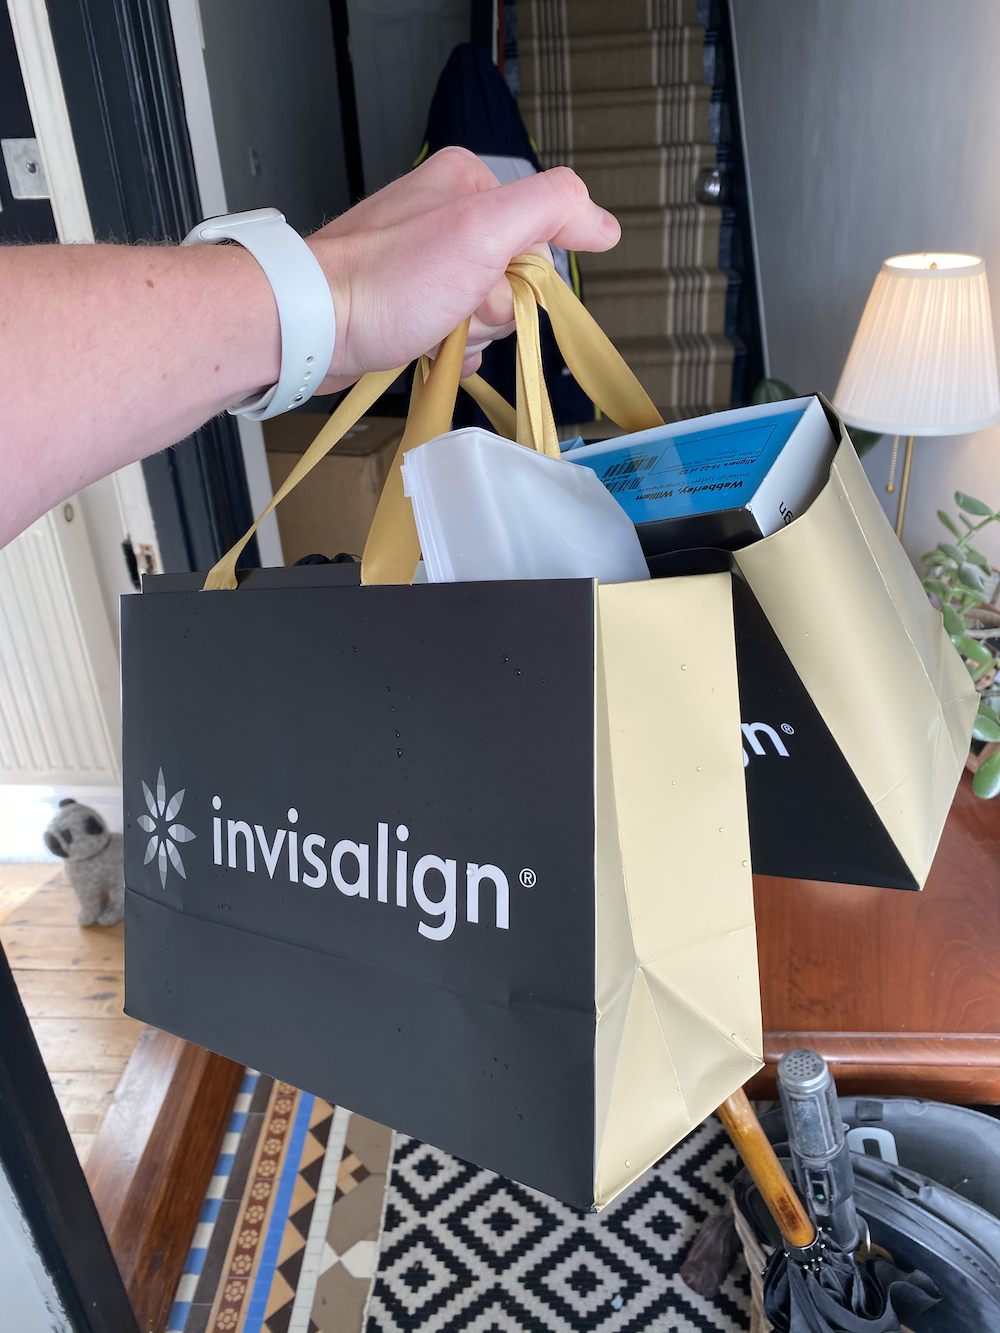 My Invisalign goodie bags